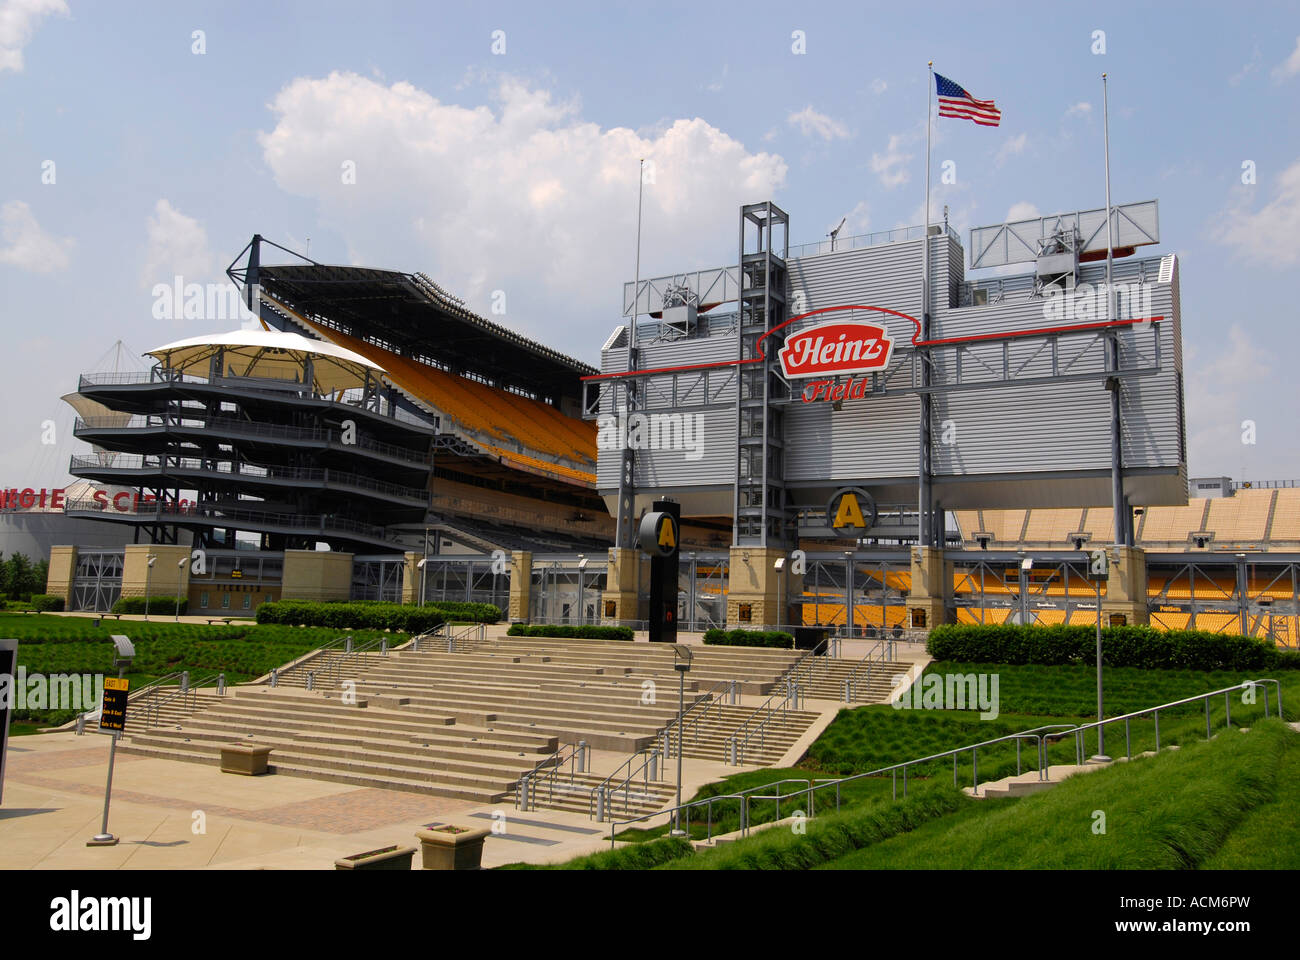 Heinz Field the home of the professional football team Pittsburgh Steelers in the city of Pittsburgh Pennsylvania - Stock Image